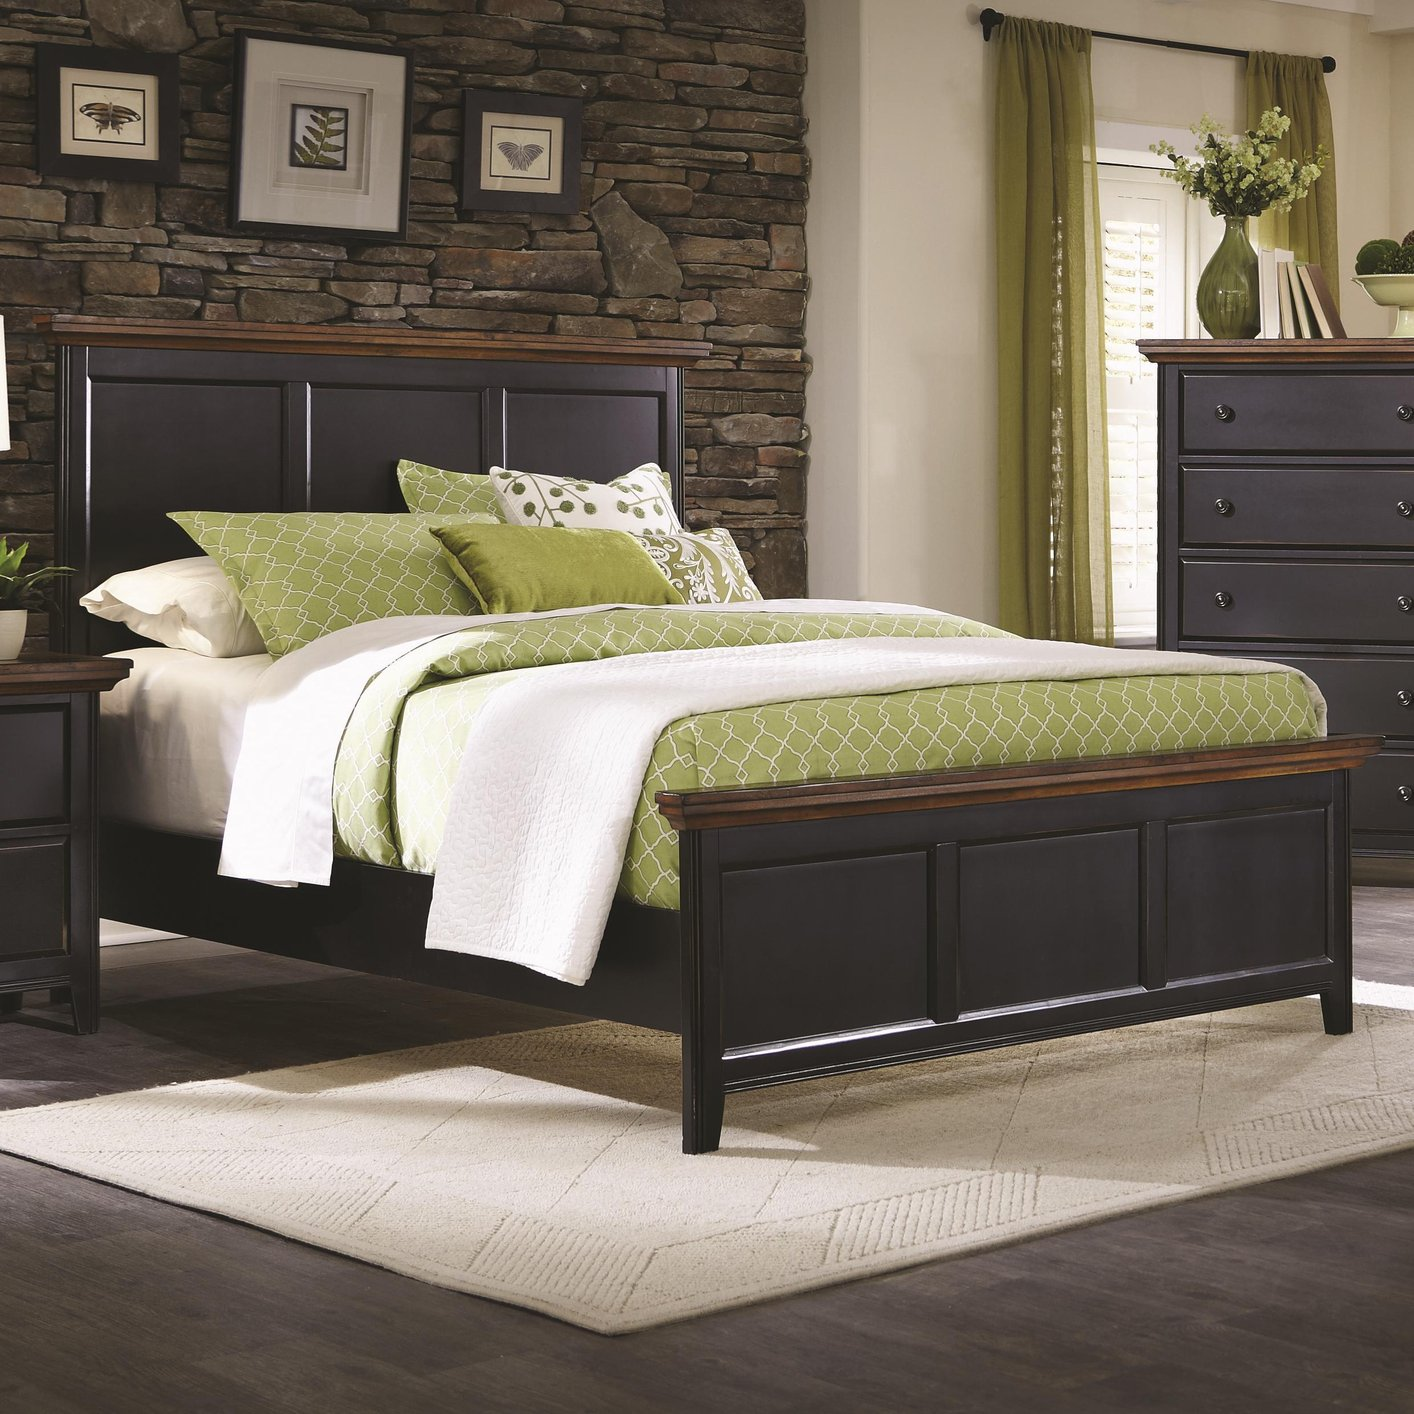 Brown Wood Full Size Bed